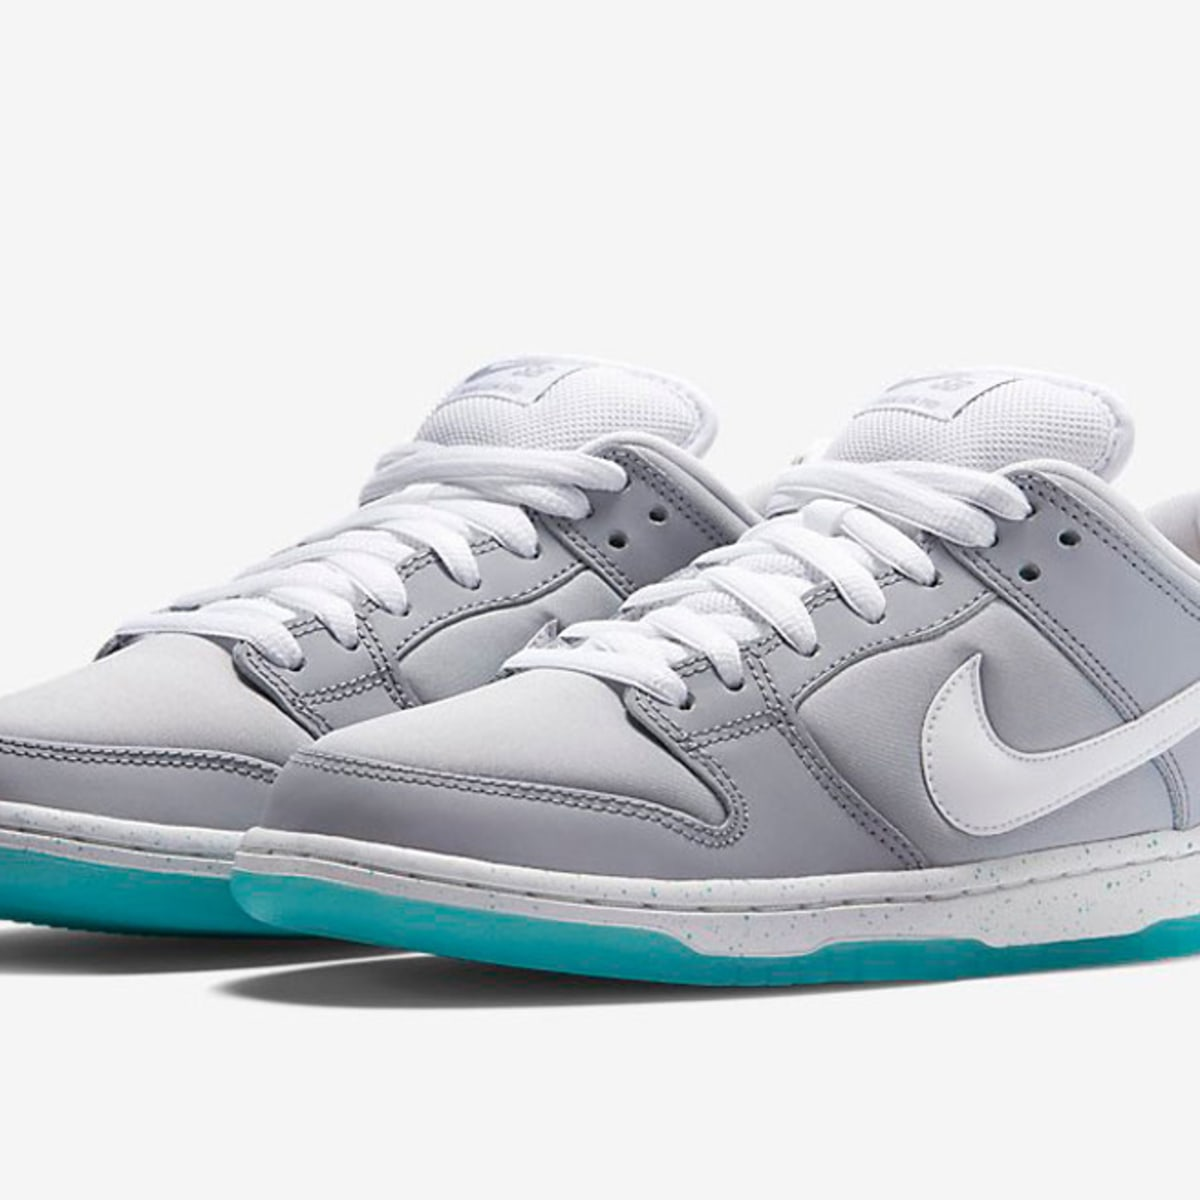 """Nike SB Dunk Low """"McFly""""   Release Date"""